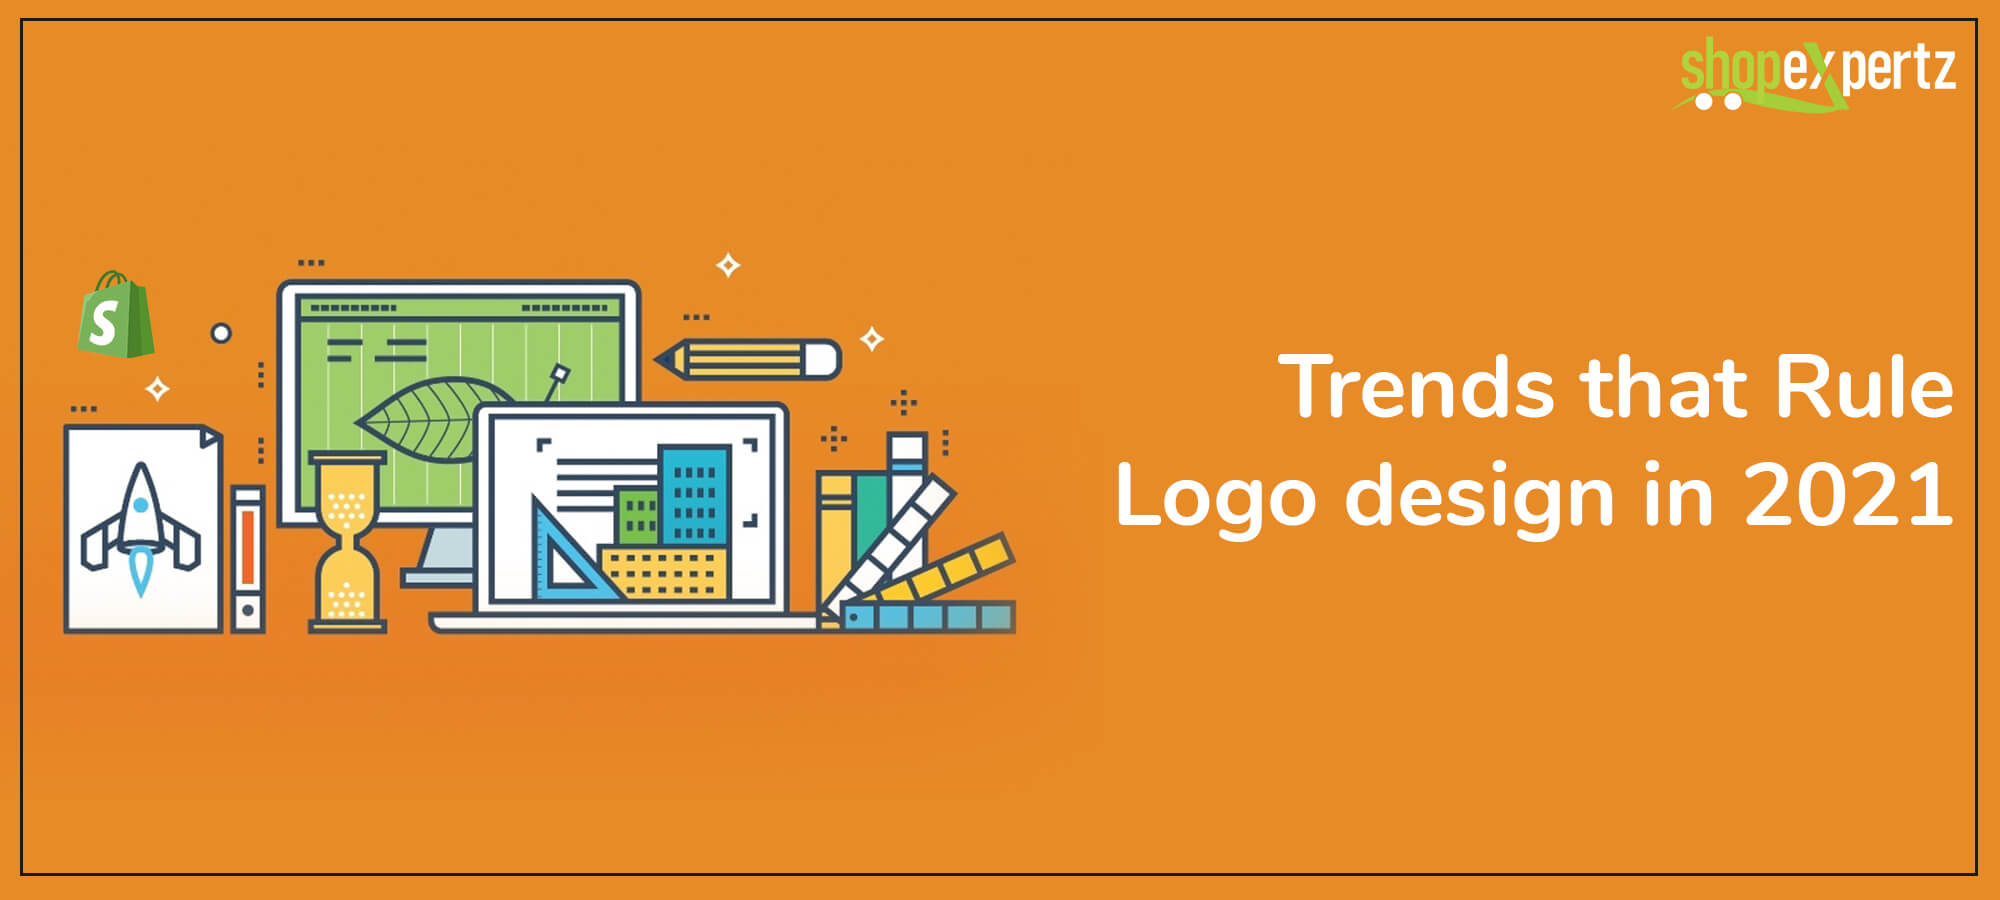 Trends that Rule Logo design in 2021